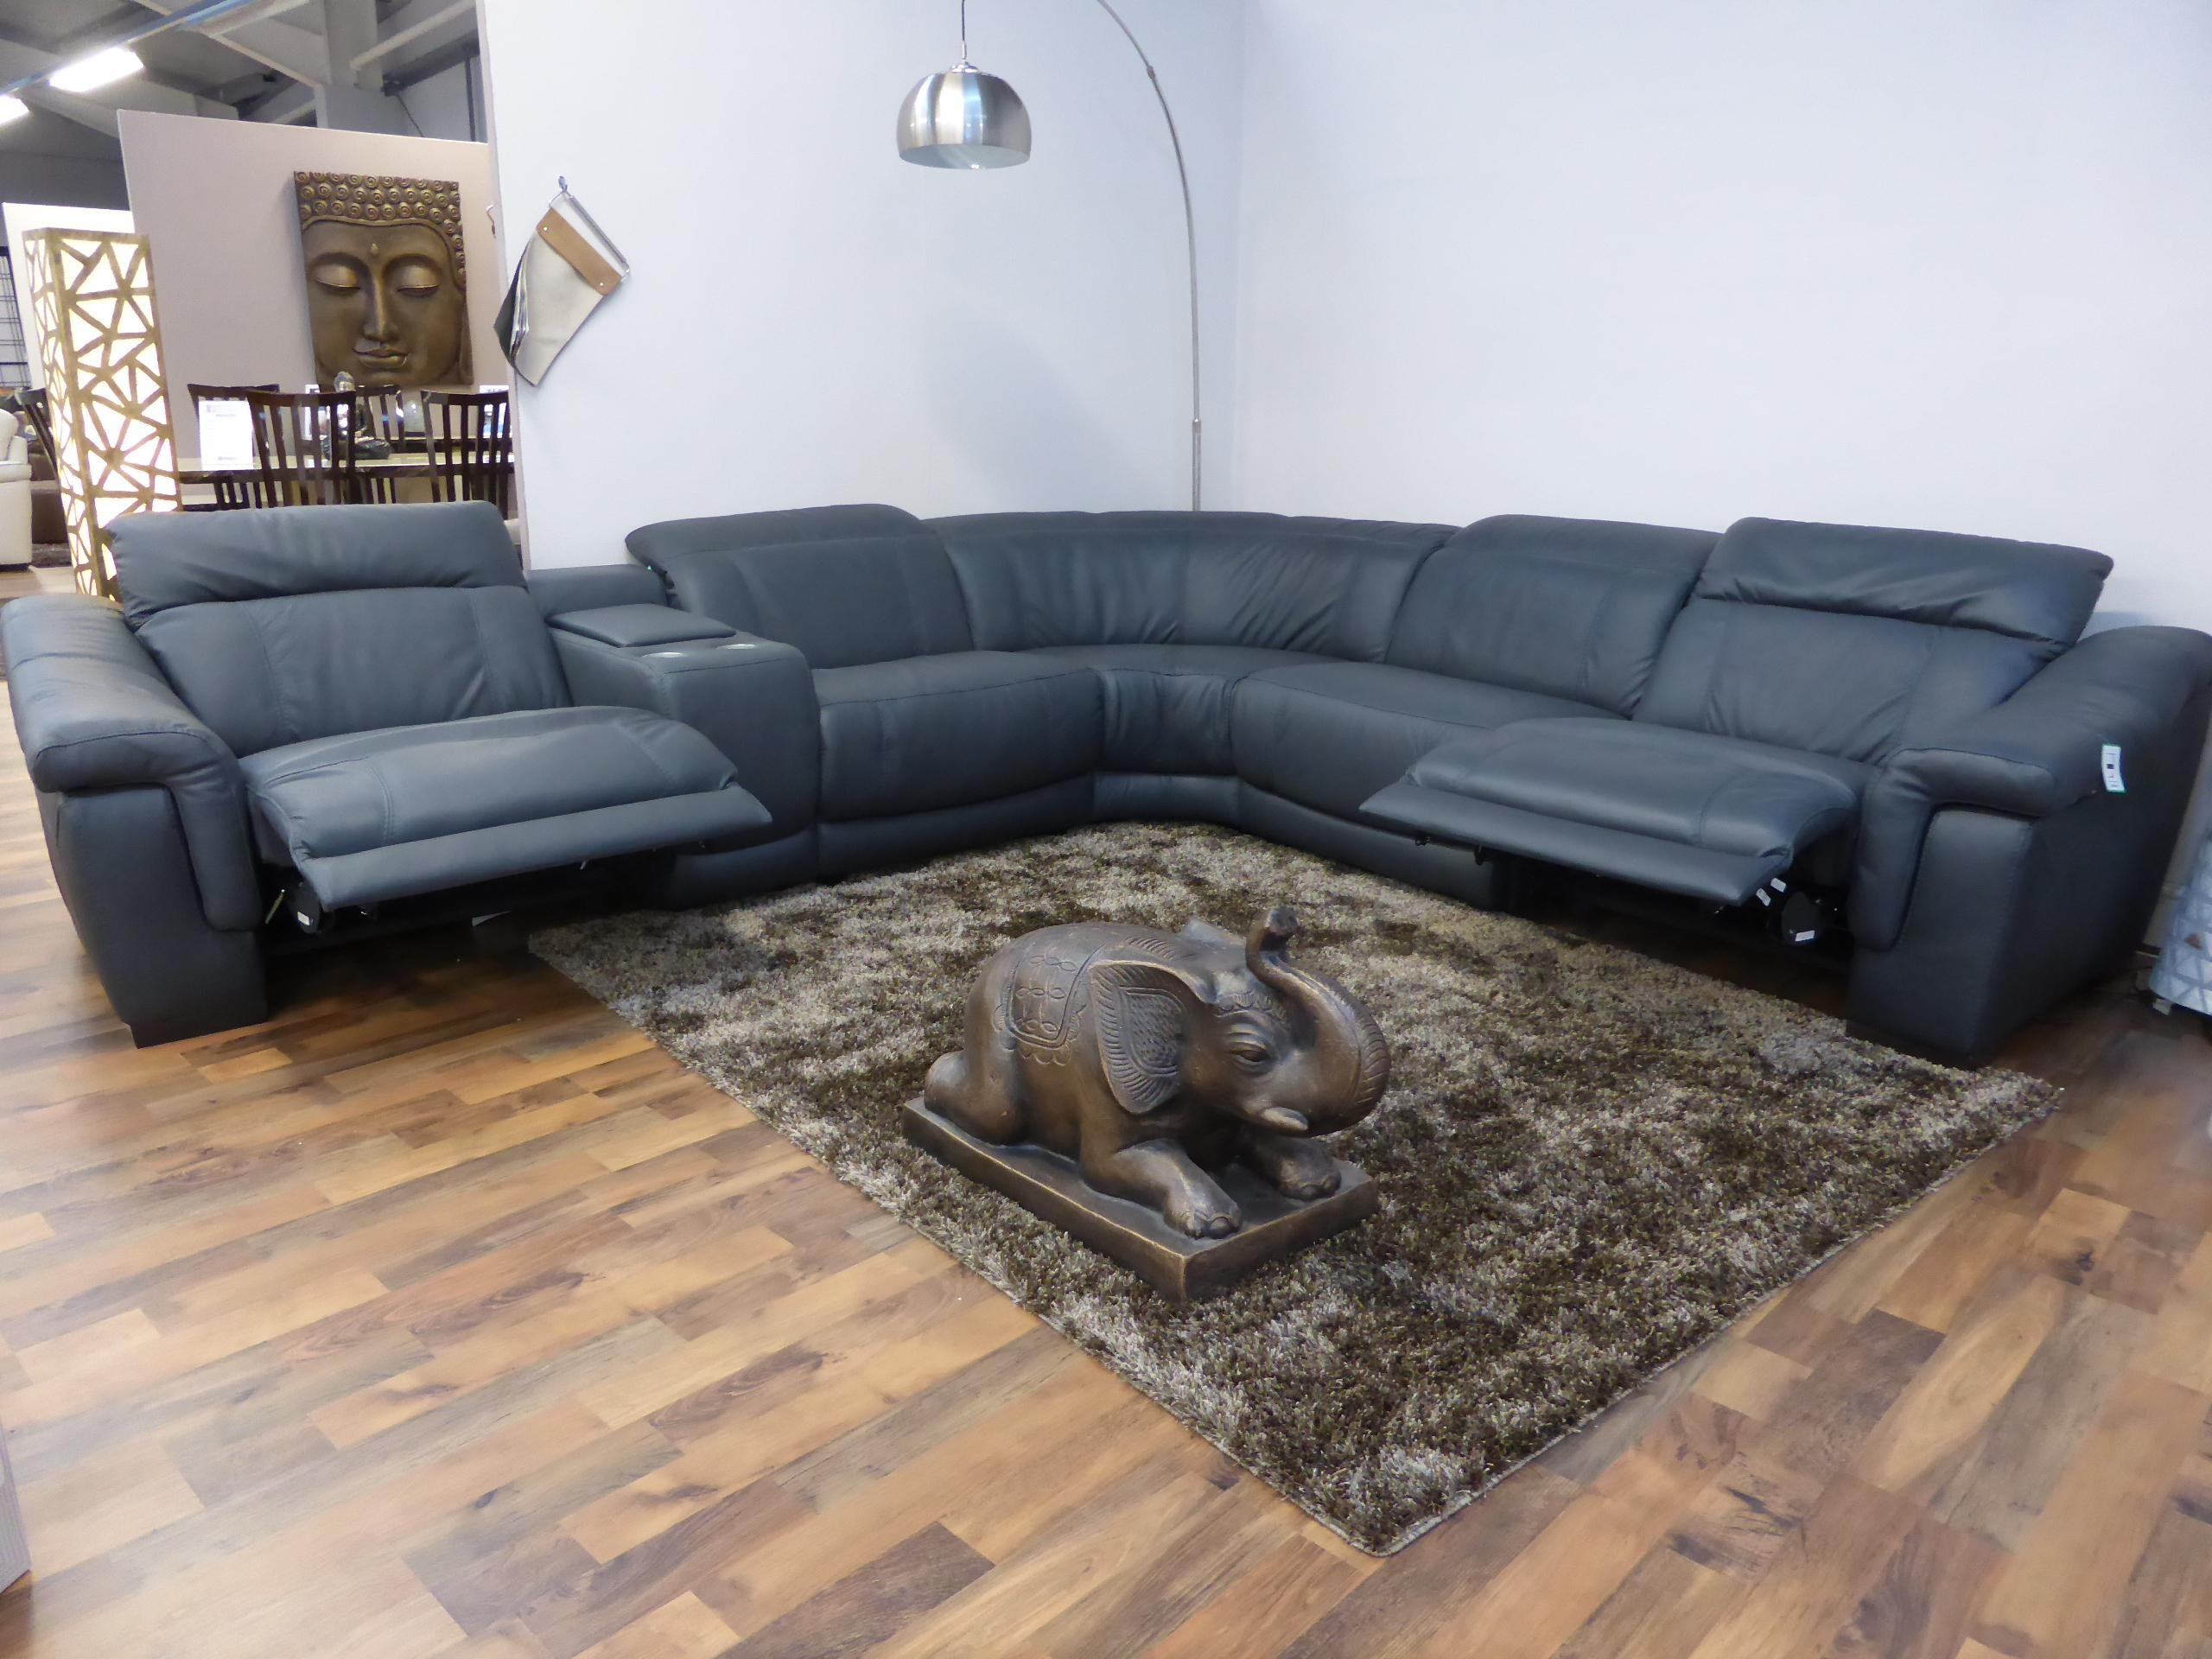 Chinaklsk Pertaining To Italian Recliner Sofas (View 4 of 20)